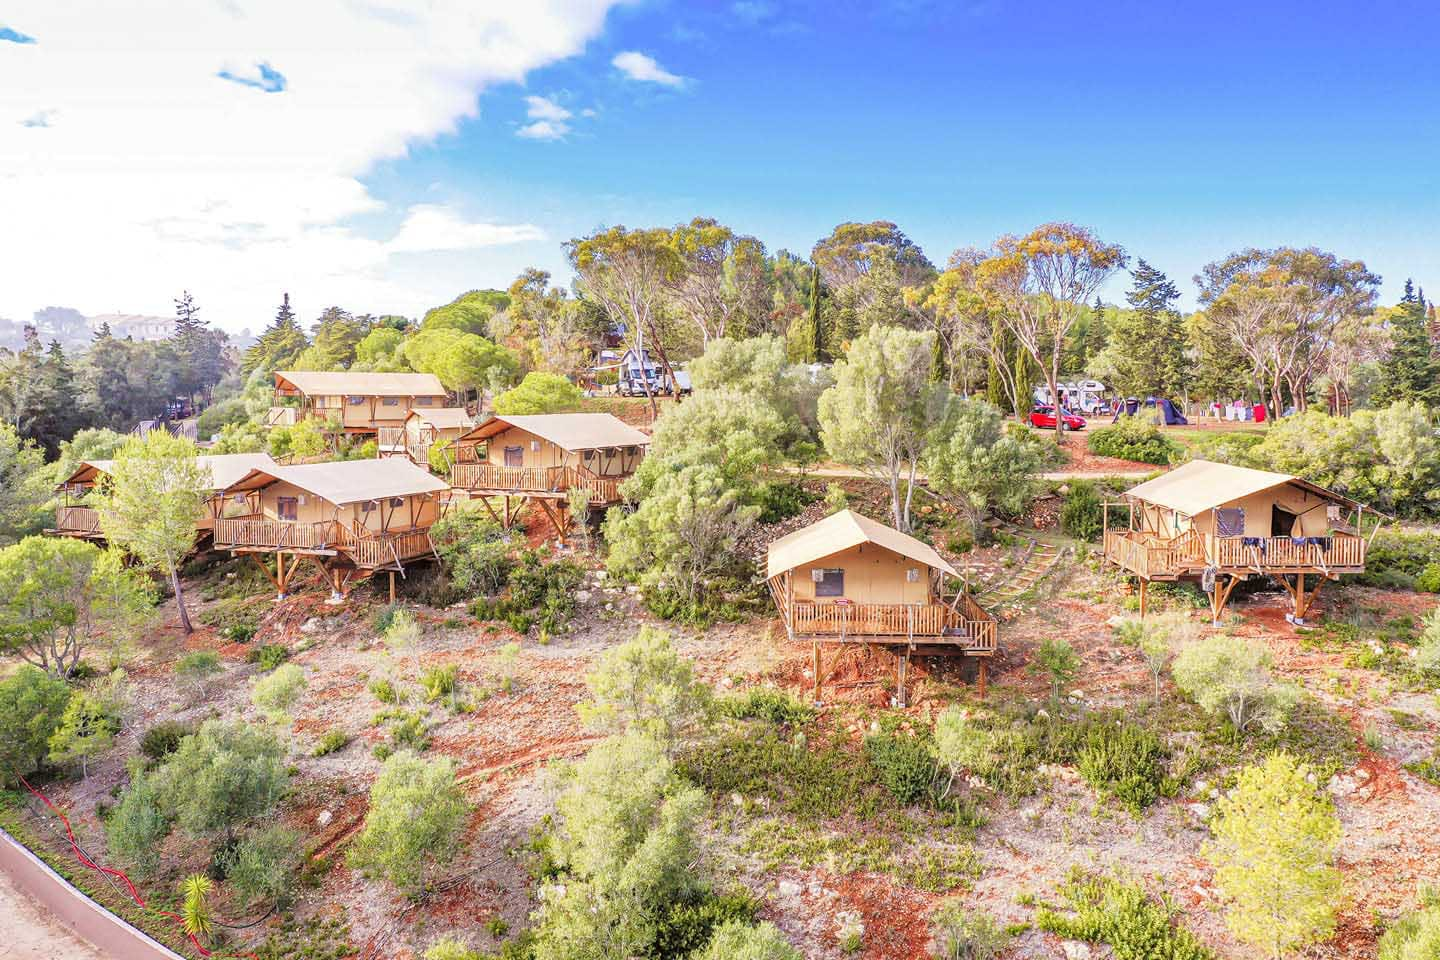 Aerial view of Salema Eco Camp, the best campground in the Algarve.